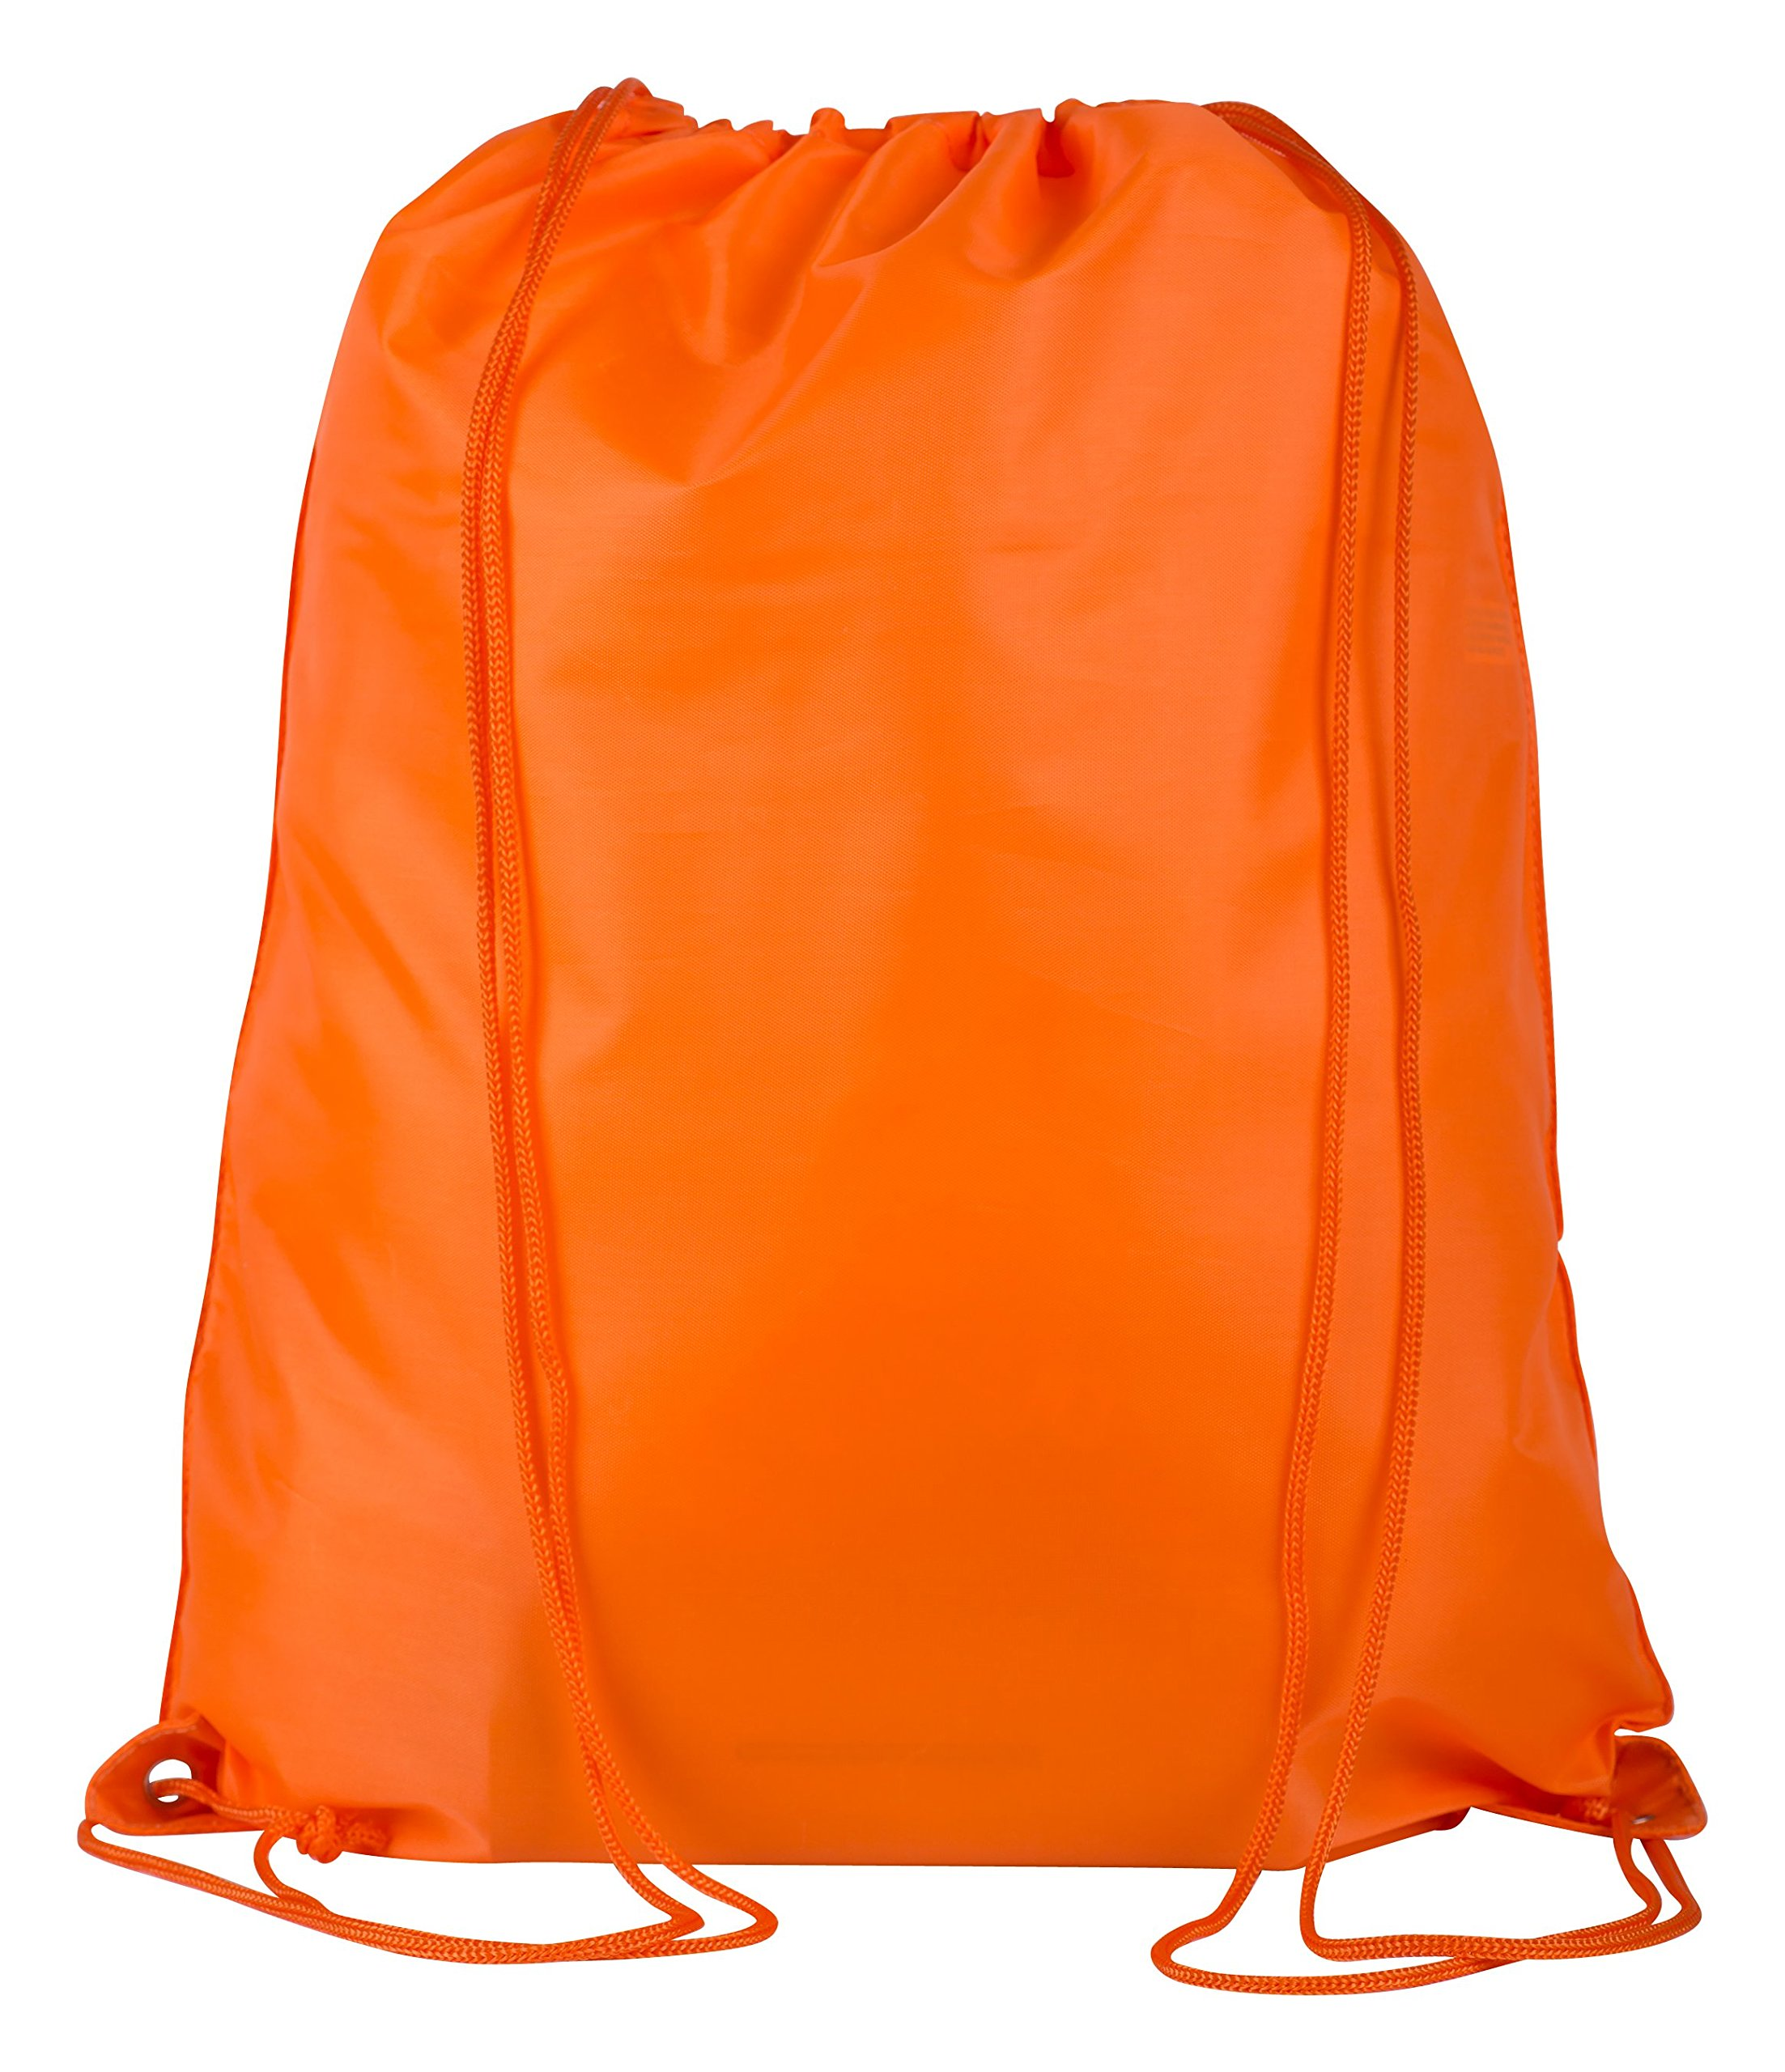 Promotional Polyester Drawstring Bag 12-Pack - Comfortable & Stylish Backpack Sack With Adjustable Straps, Great For DIY Projects, Brand Promotions, Gyms, Schools (Large (17''W x 20''H), ORANGE)